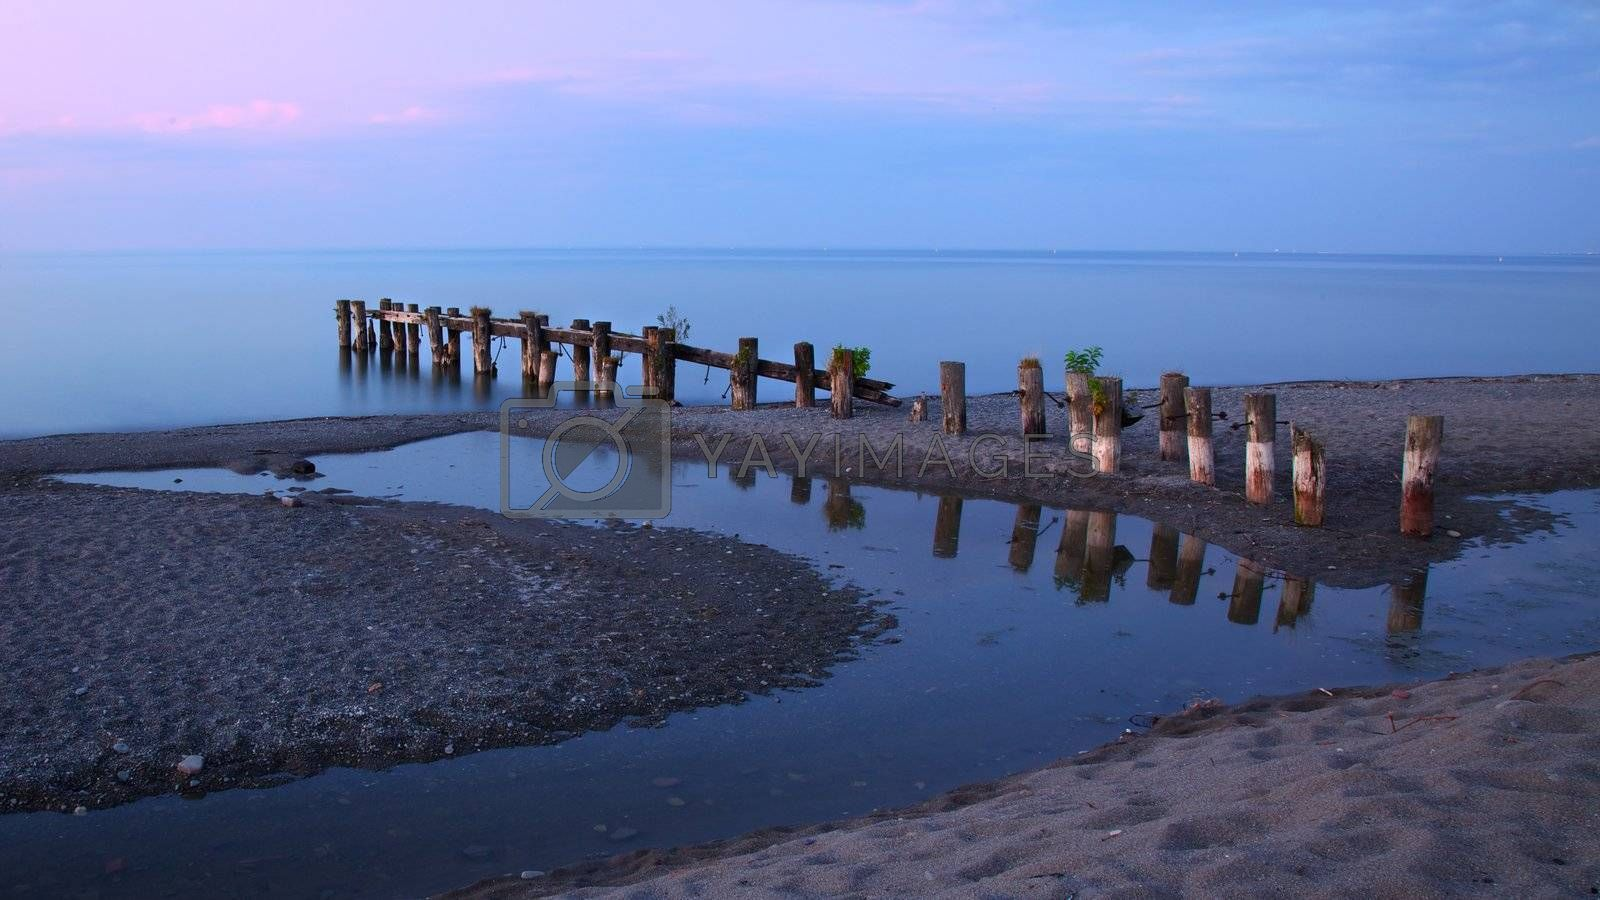 Royalty free image of Old pier on Lake Ontario by ralanscott